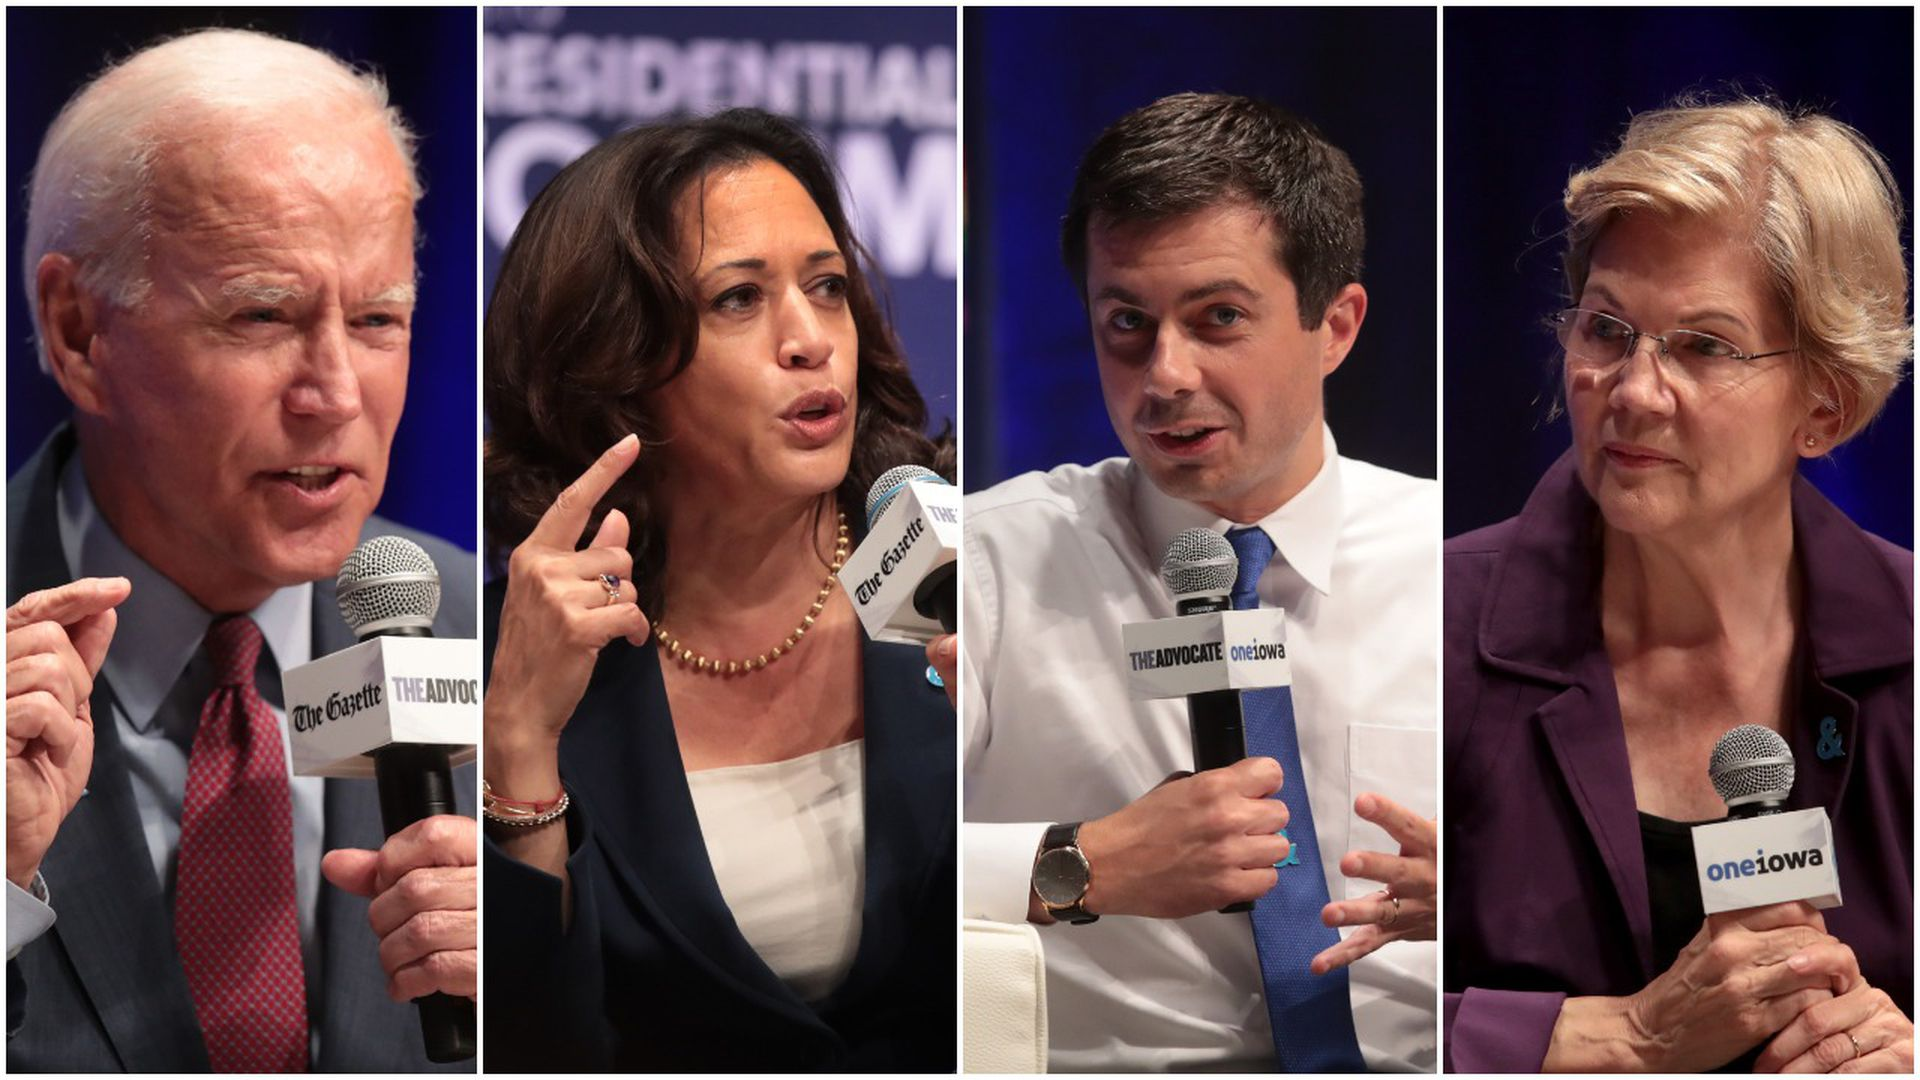 This image is a four-way split screen between Biden, Kamala, Pete, and Warren. They are all speaking into microphones.